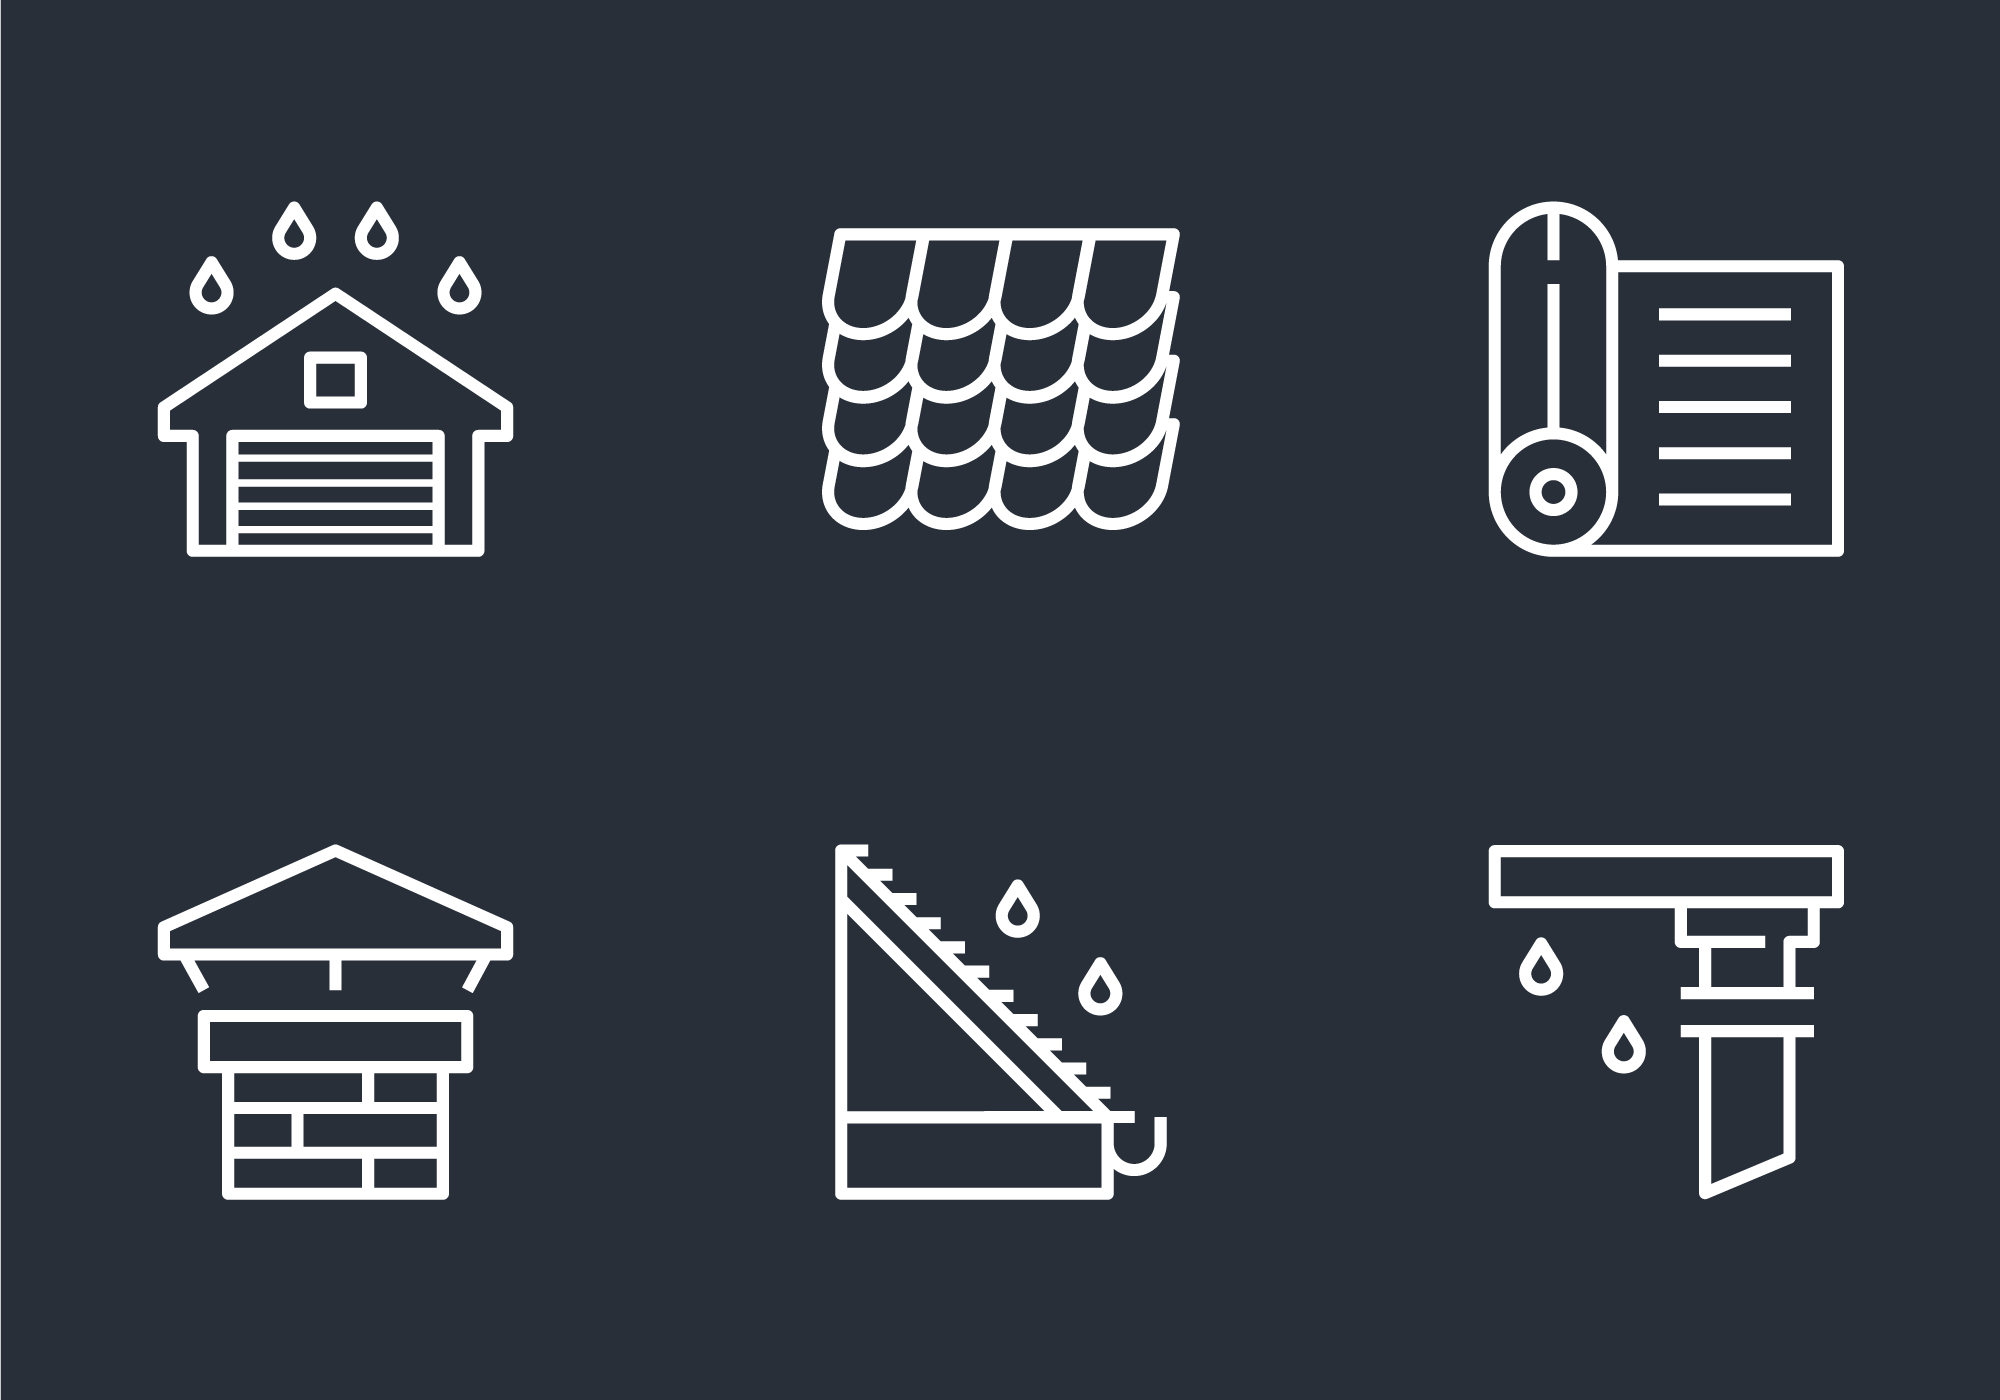 Gutter Roof Outline Icon Download Free Vectors Clipart